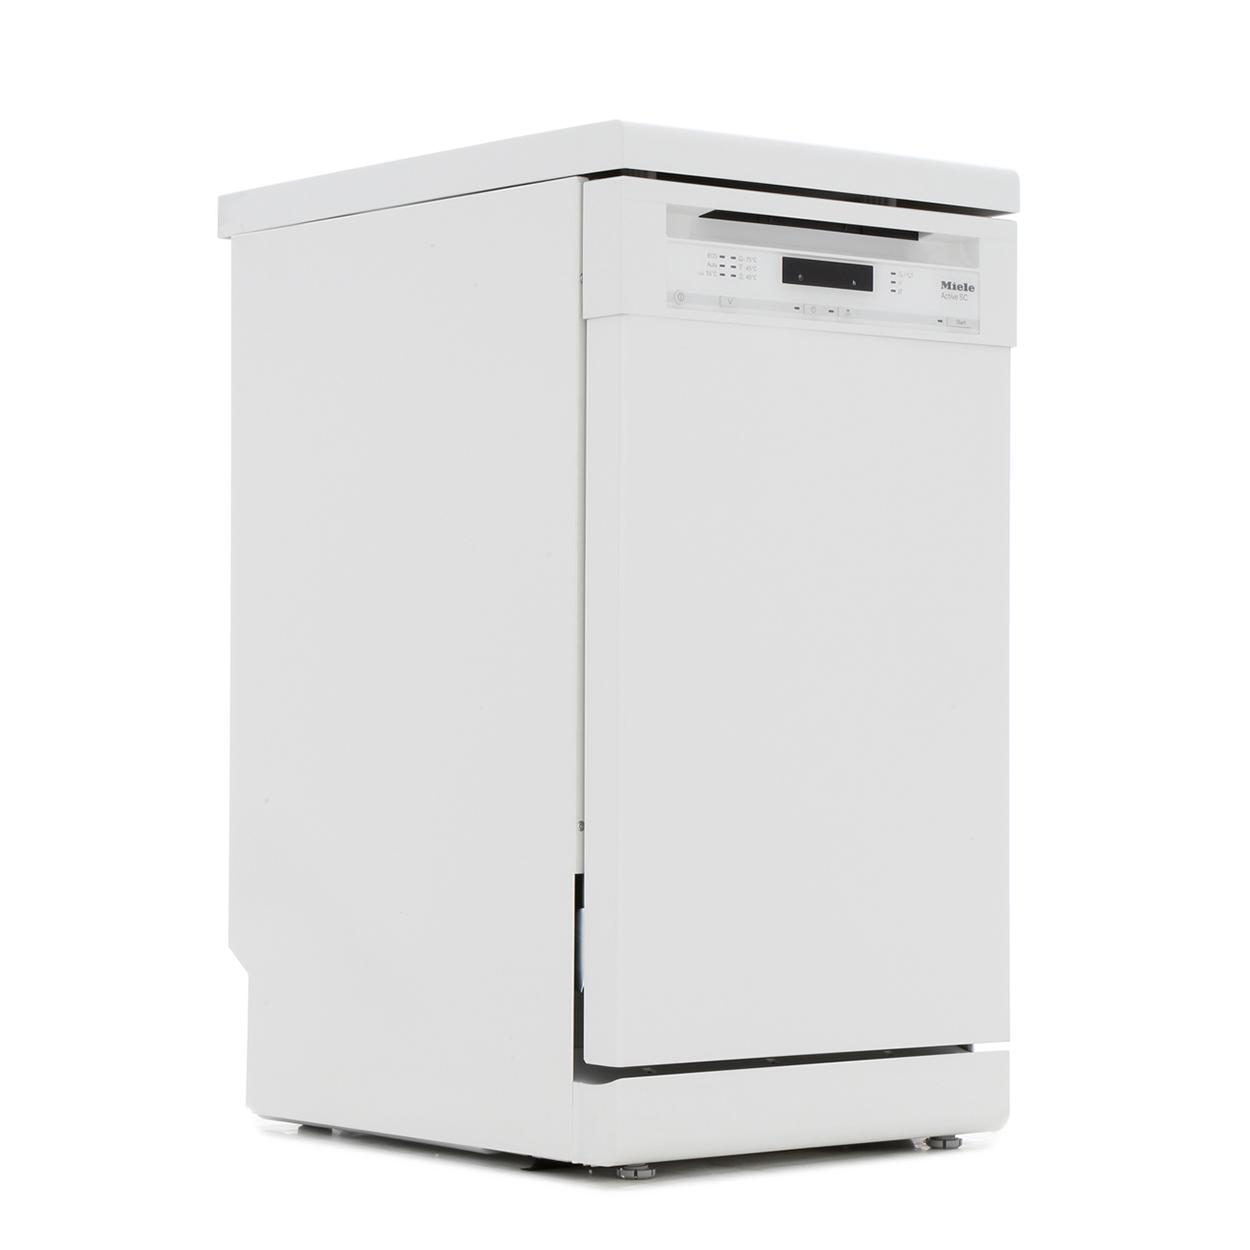 Miele G4620SC Brilliant White Slimline Dishwasher